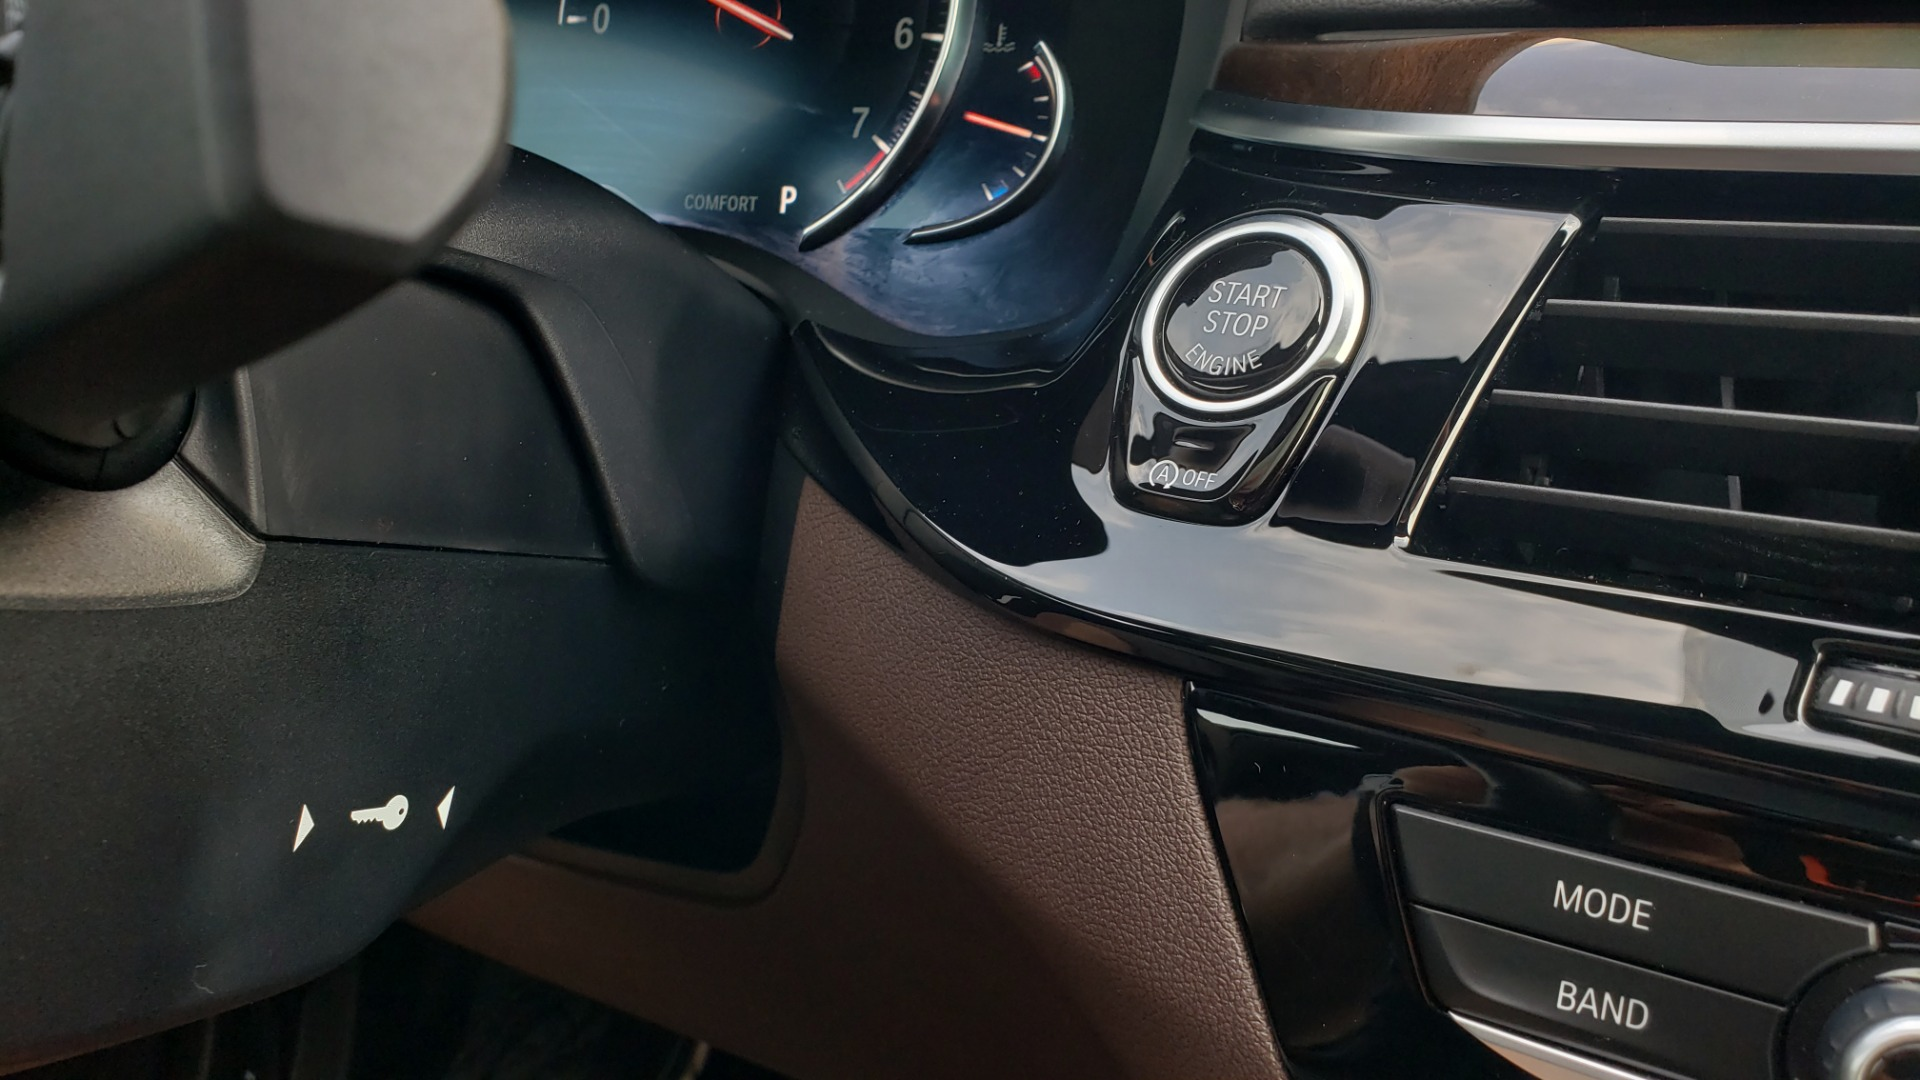 Used 2018 BMW 5 SERIES 540I XDRIVE PREMIUM / EXECUTIVE / LUXURY / H/K SND / REMOTE CONTROL PARKING for sale $40,995 at Formula Imports in Charlotte NC 28227 43